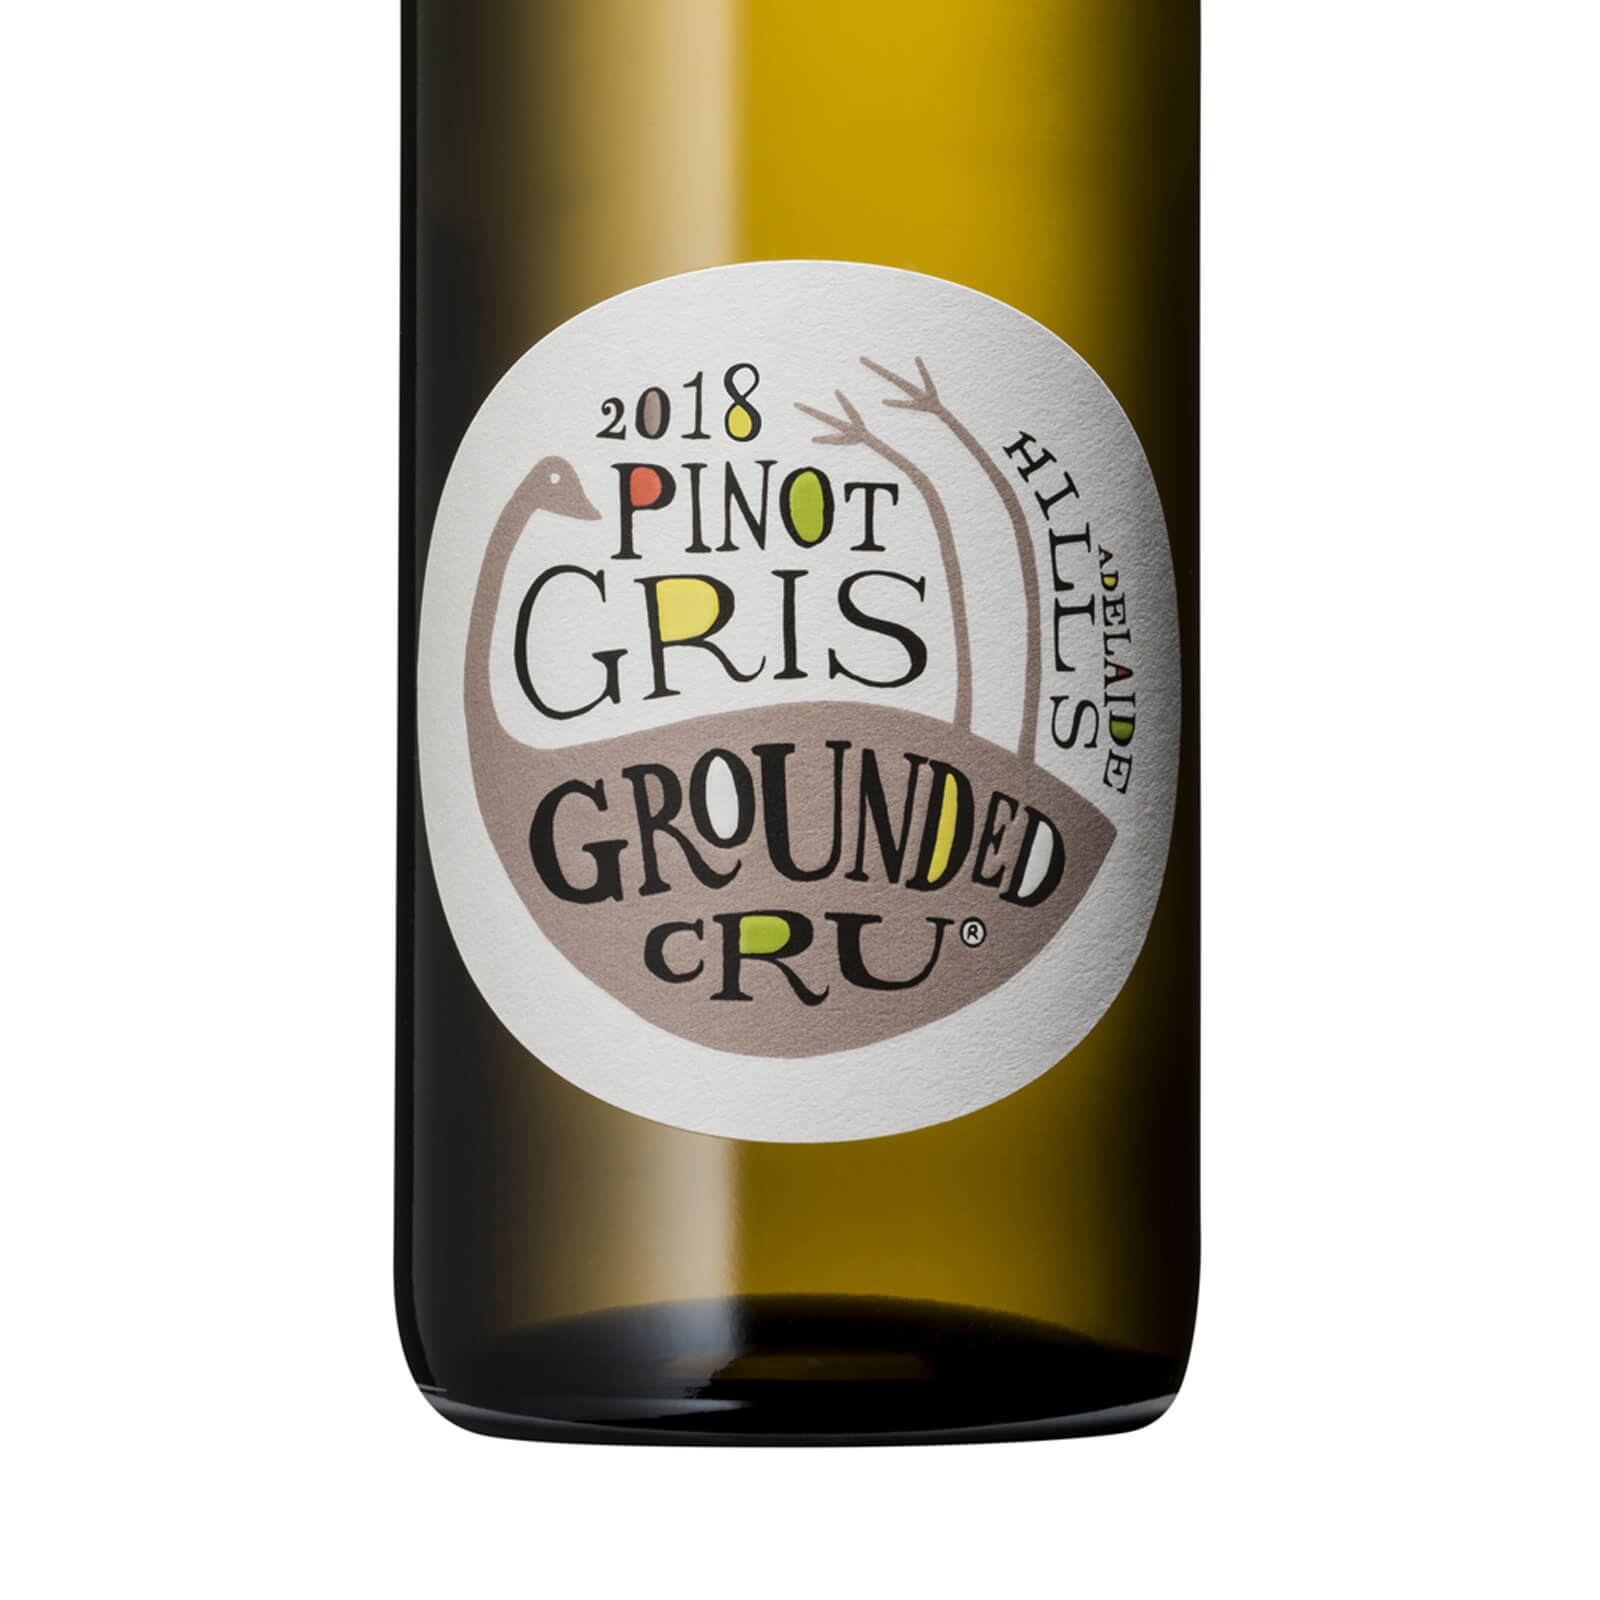 products-grounded-cru-adelaide-hills-pinot-gris-b